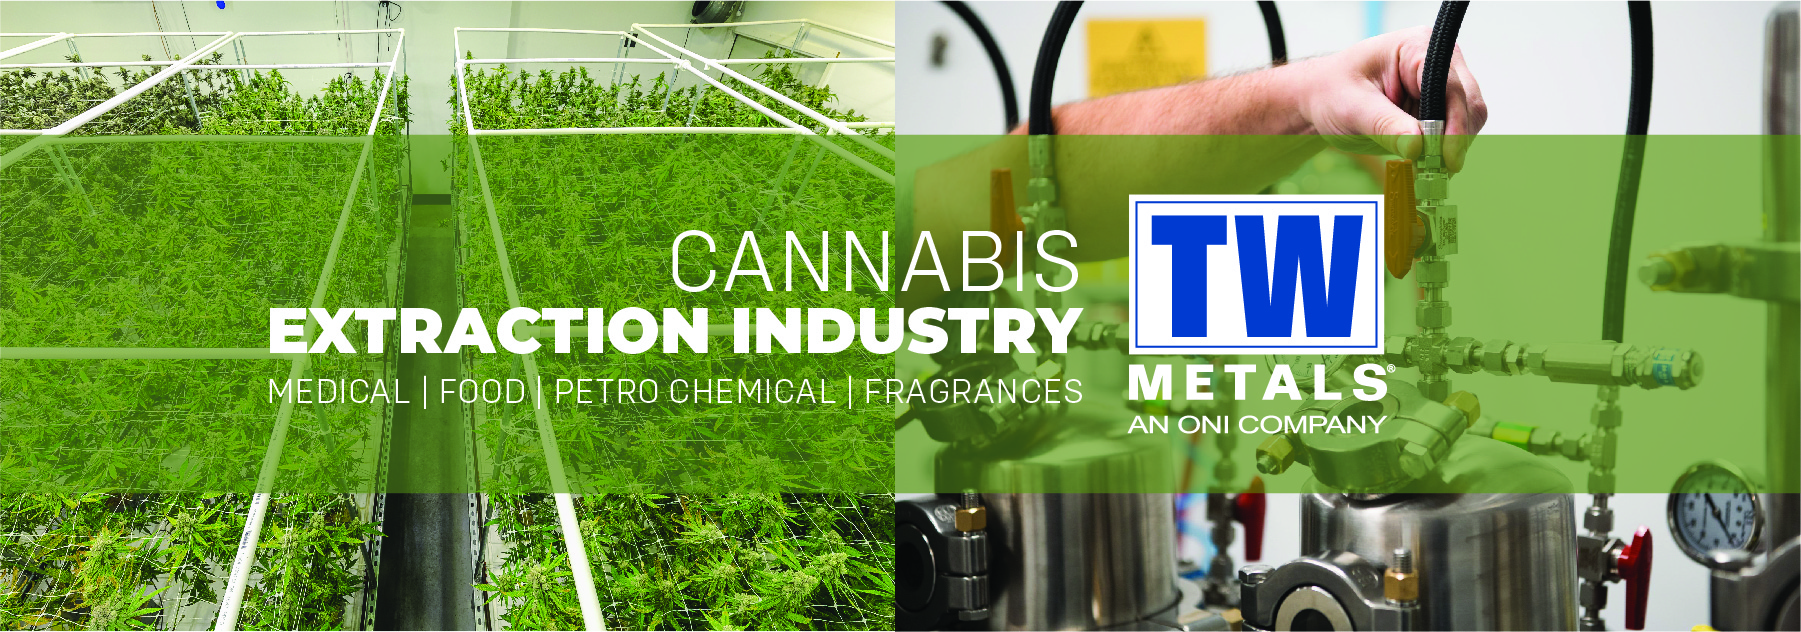 Cannabis Extraction Industry